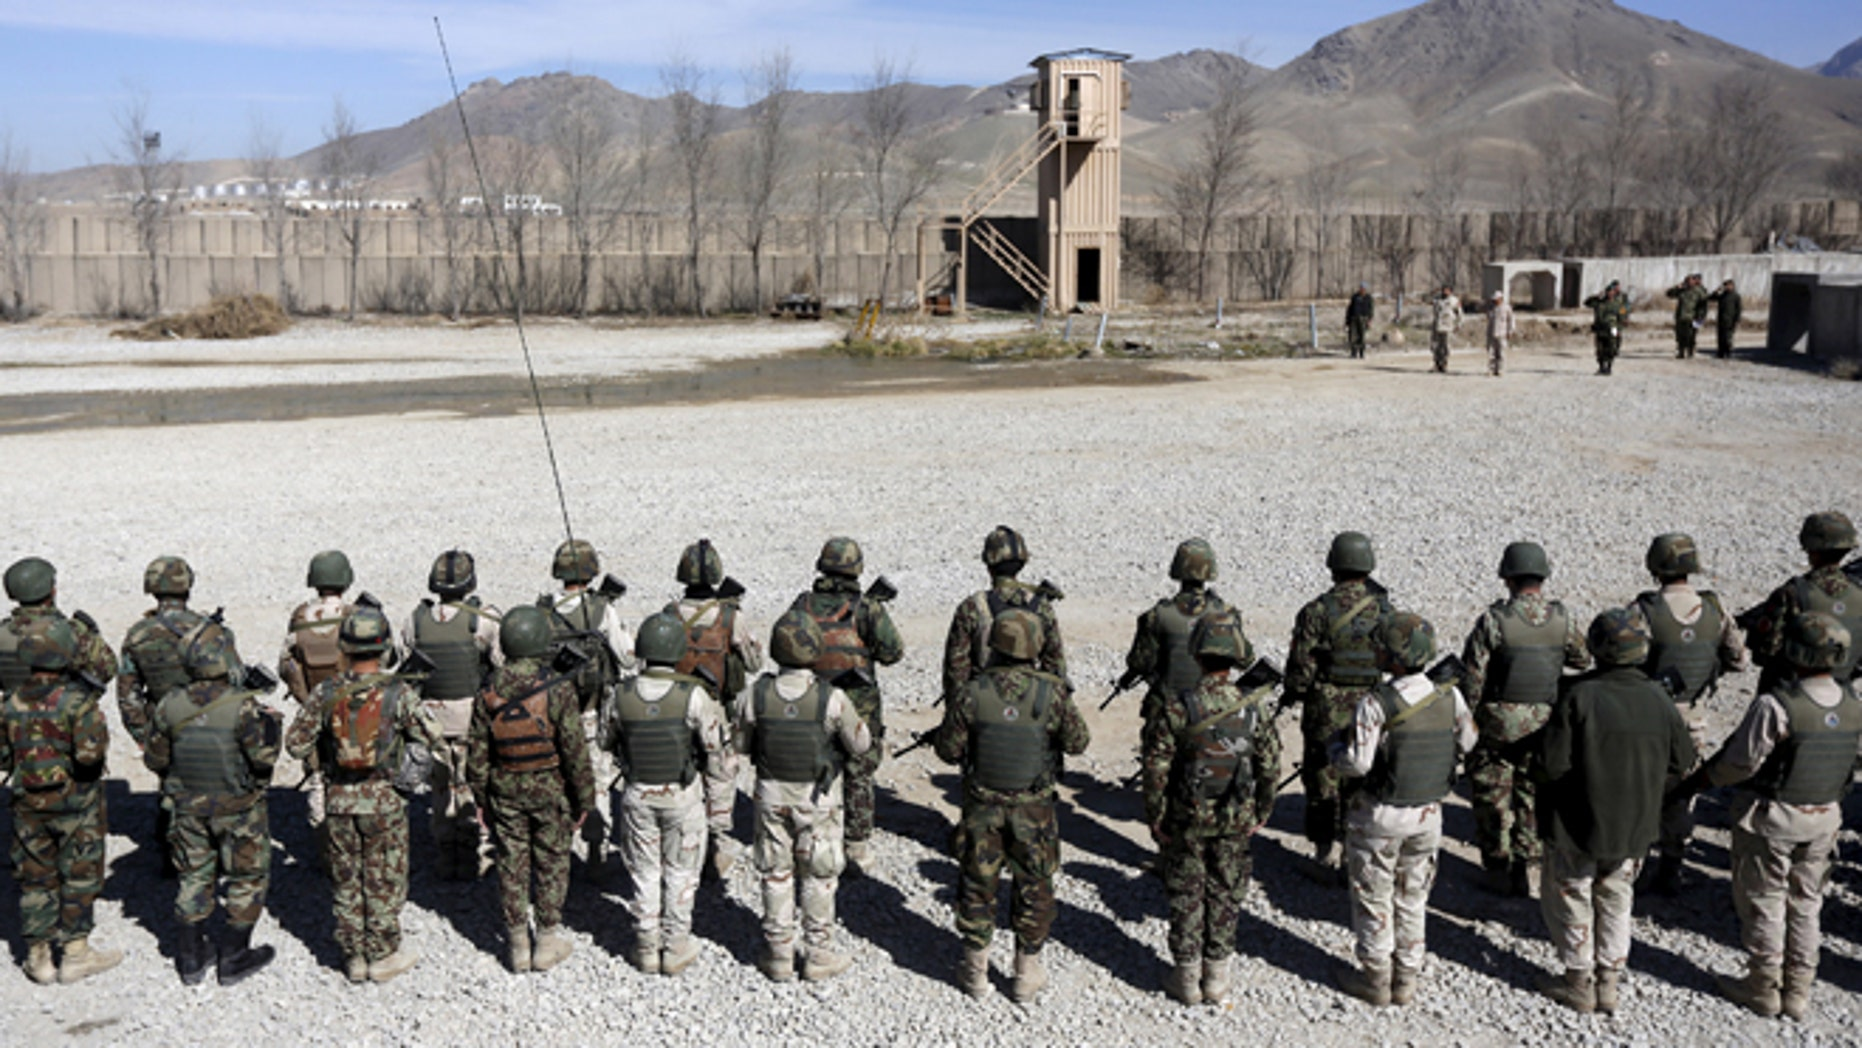 Feb. 16, 2015: Afghan National Army soldiers prepare to leave for a patrol in Logar province. (Reuters)